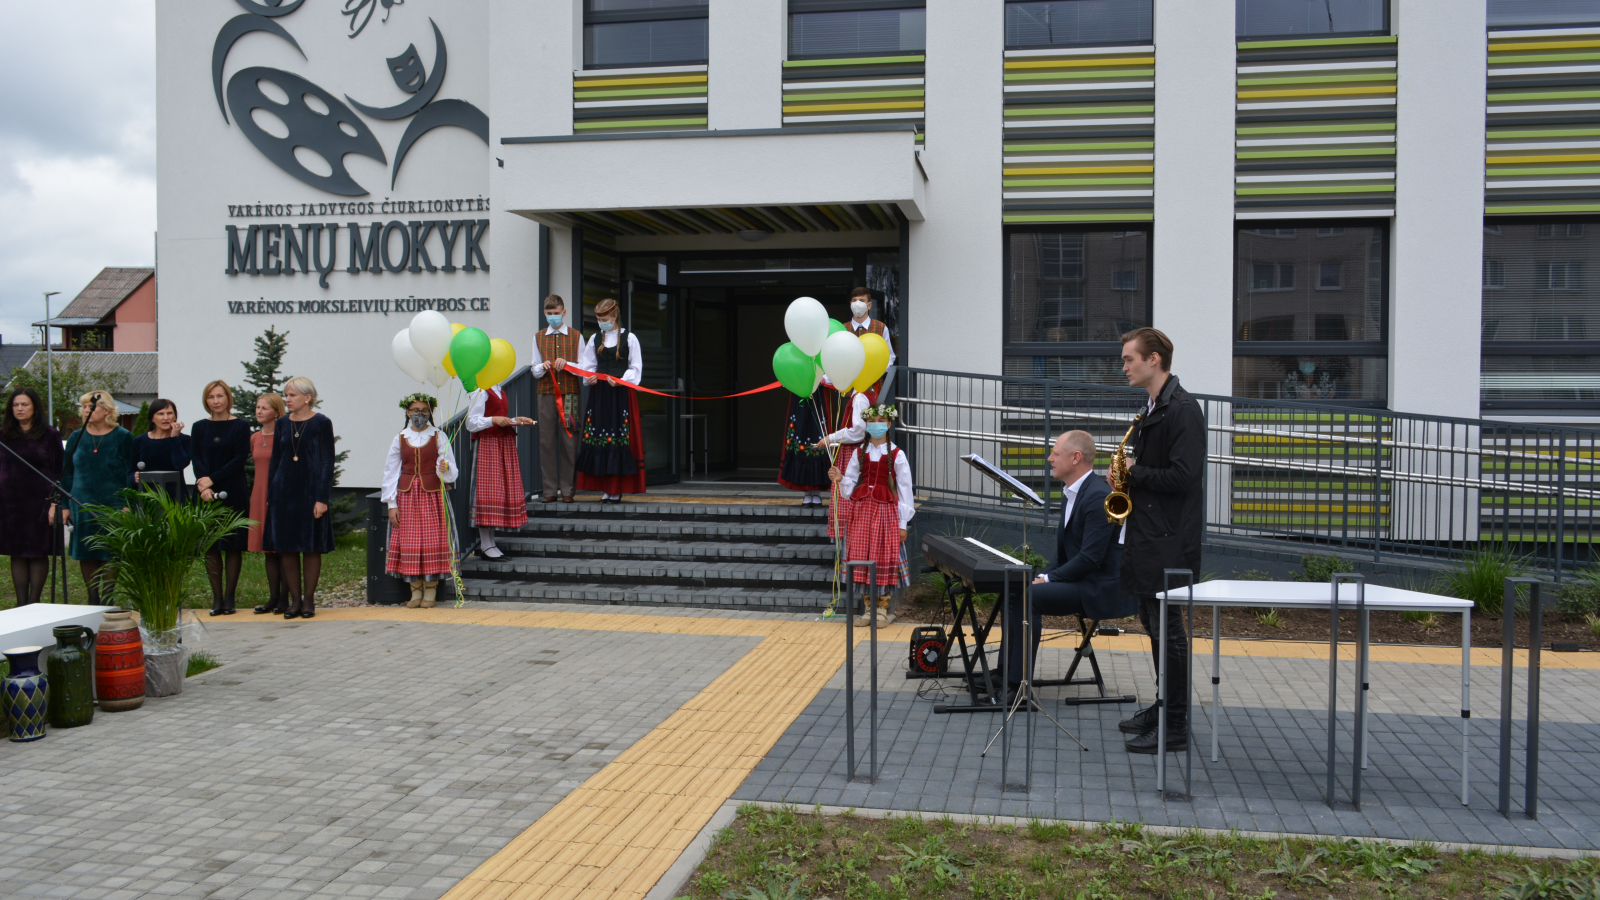 Renovated art school opening in Varena, Lithuania